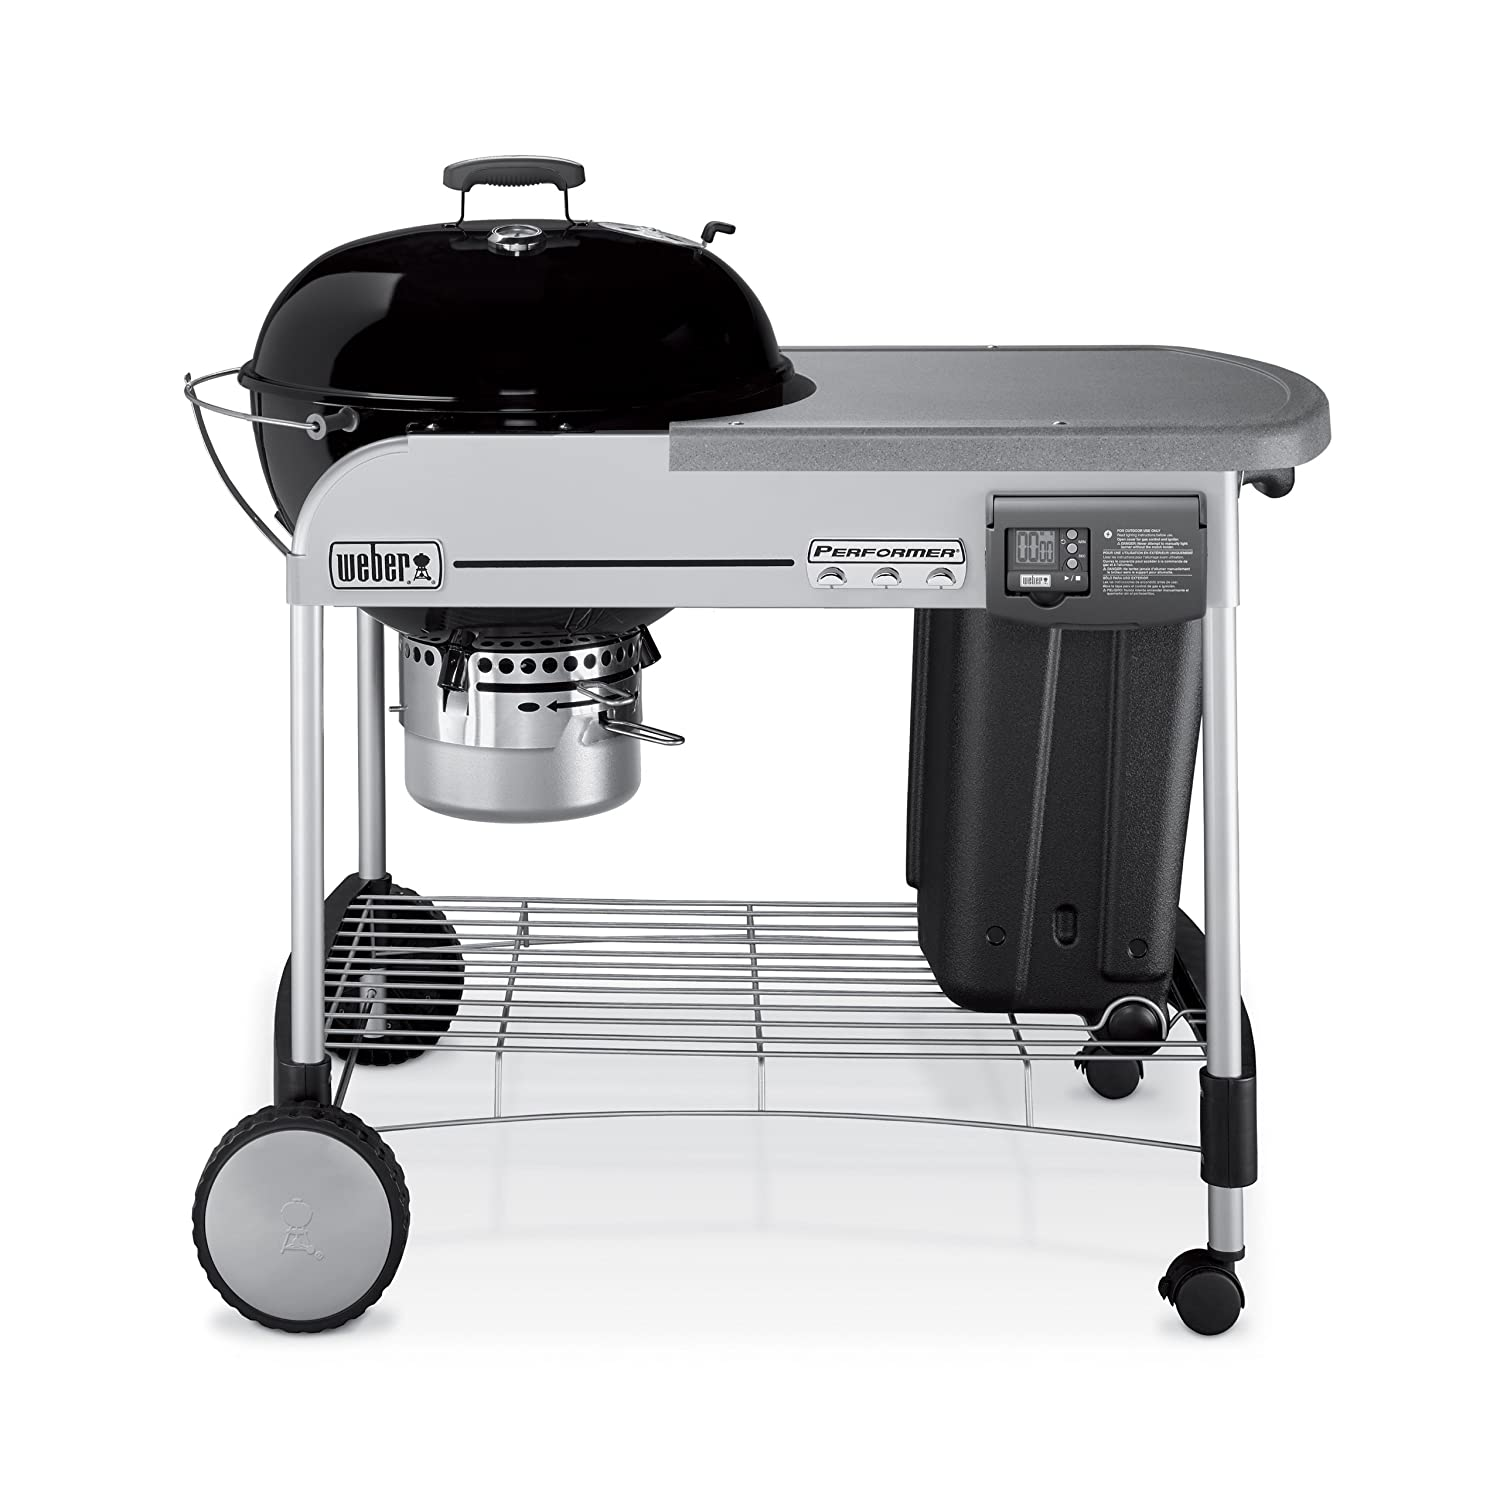 Weber Performer Platinum Charcoal Grill